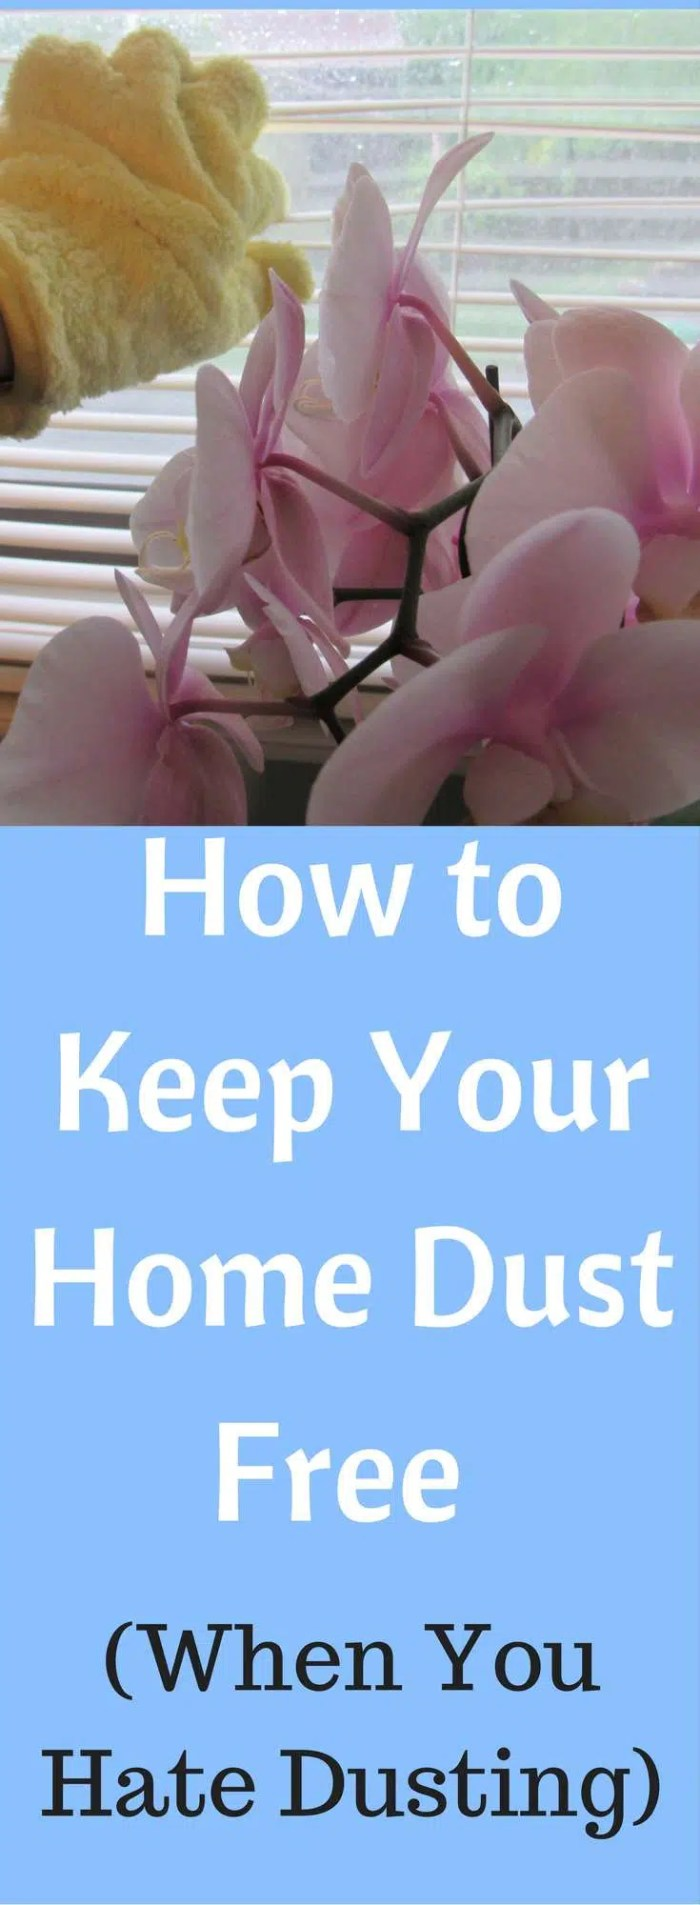 Keeping Your Home Dust Free | Cleaning Tips | Cleaning Hacks | Dusting Hacks